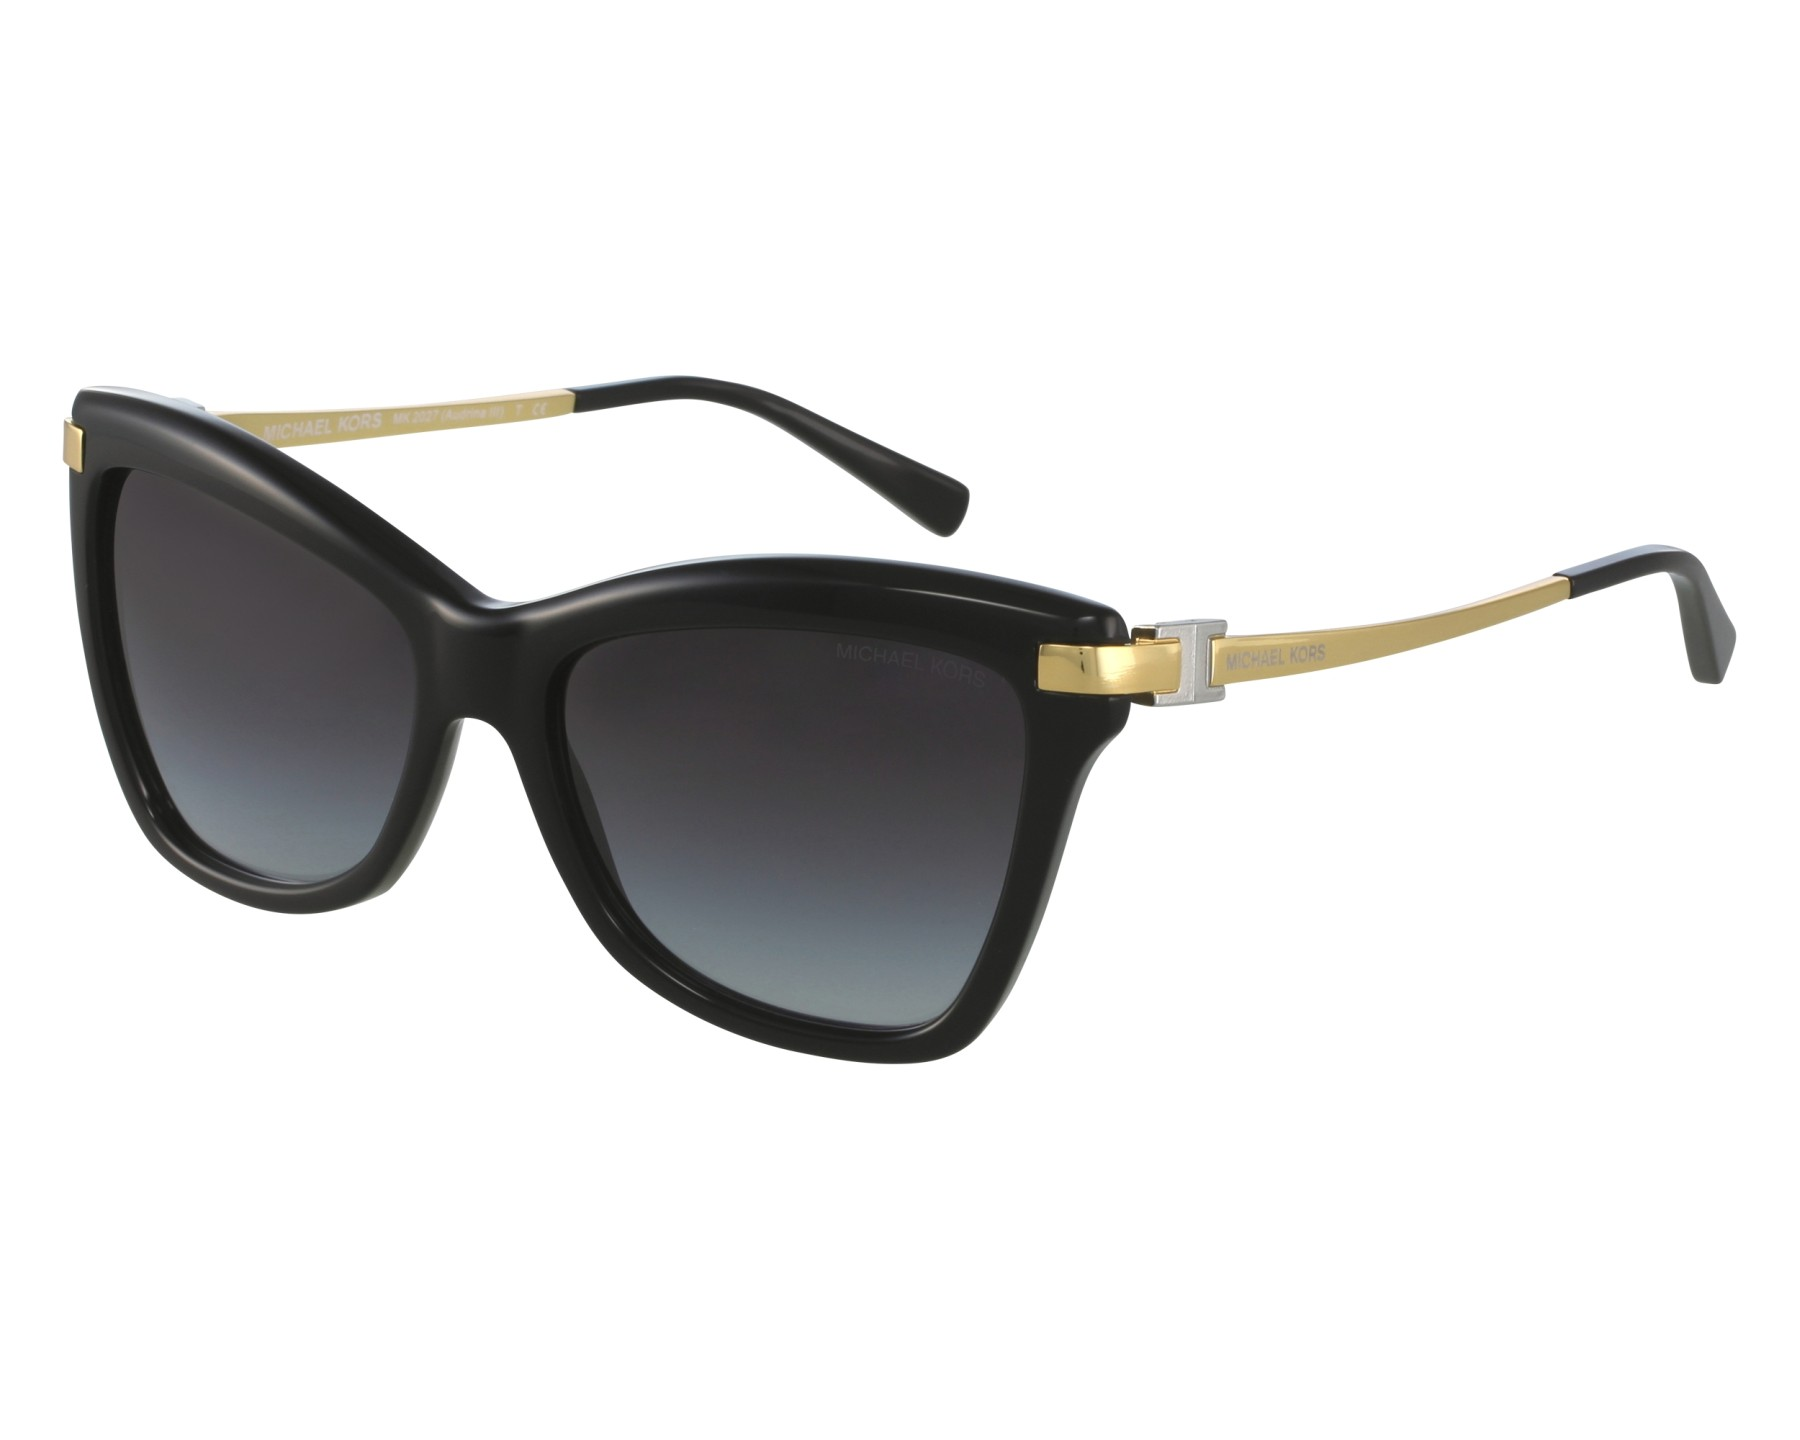 Sunglasses Michael Kors MK-2027 3171 11 - Black Gold front view 626dd4b890